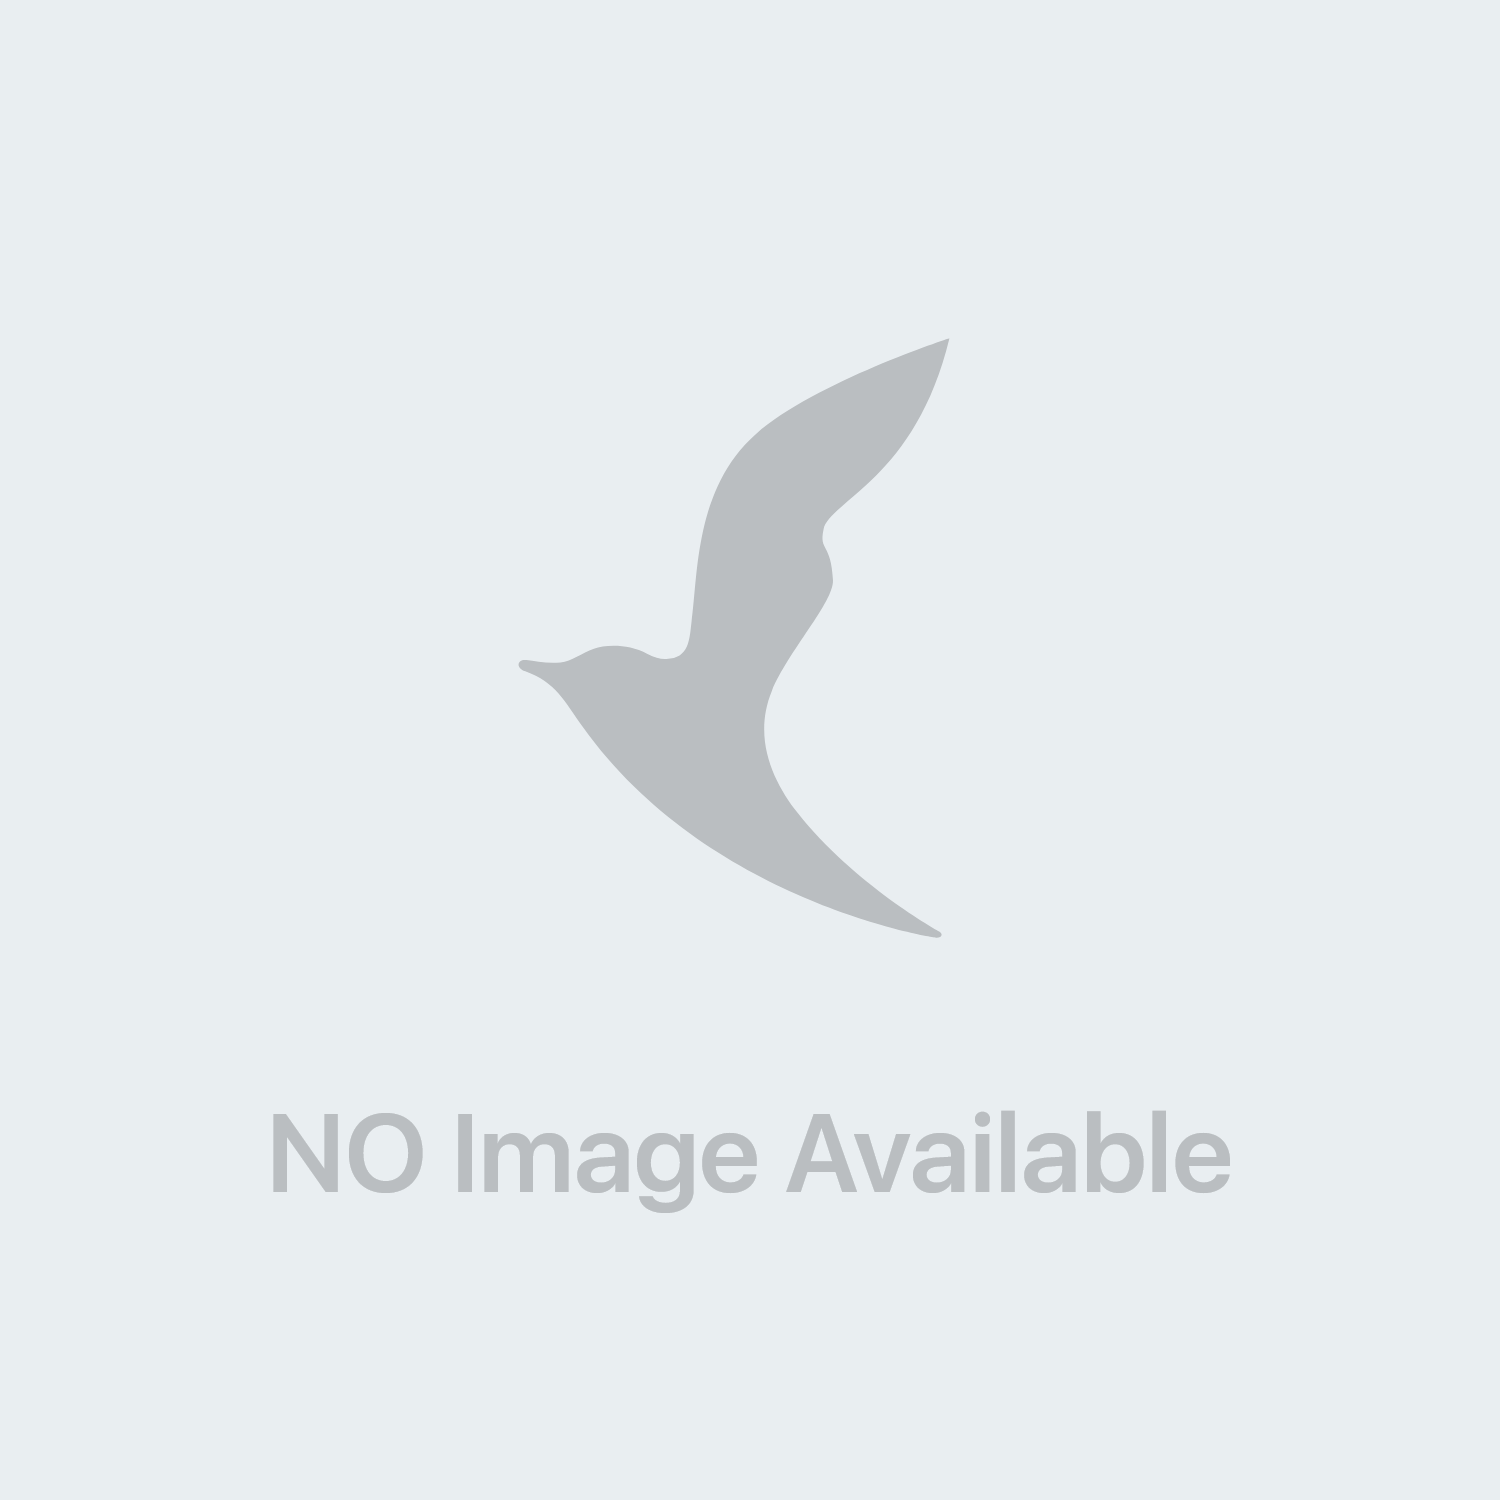 OPTIMA Cuore Melograno Succo 1000ml